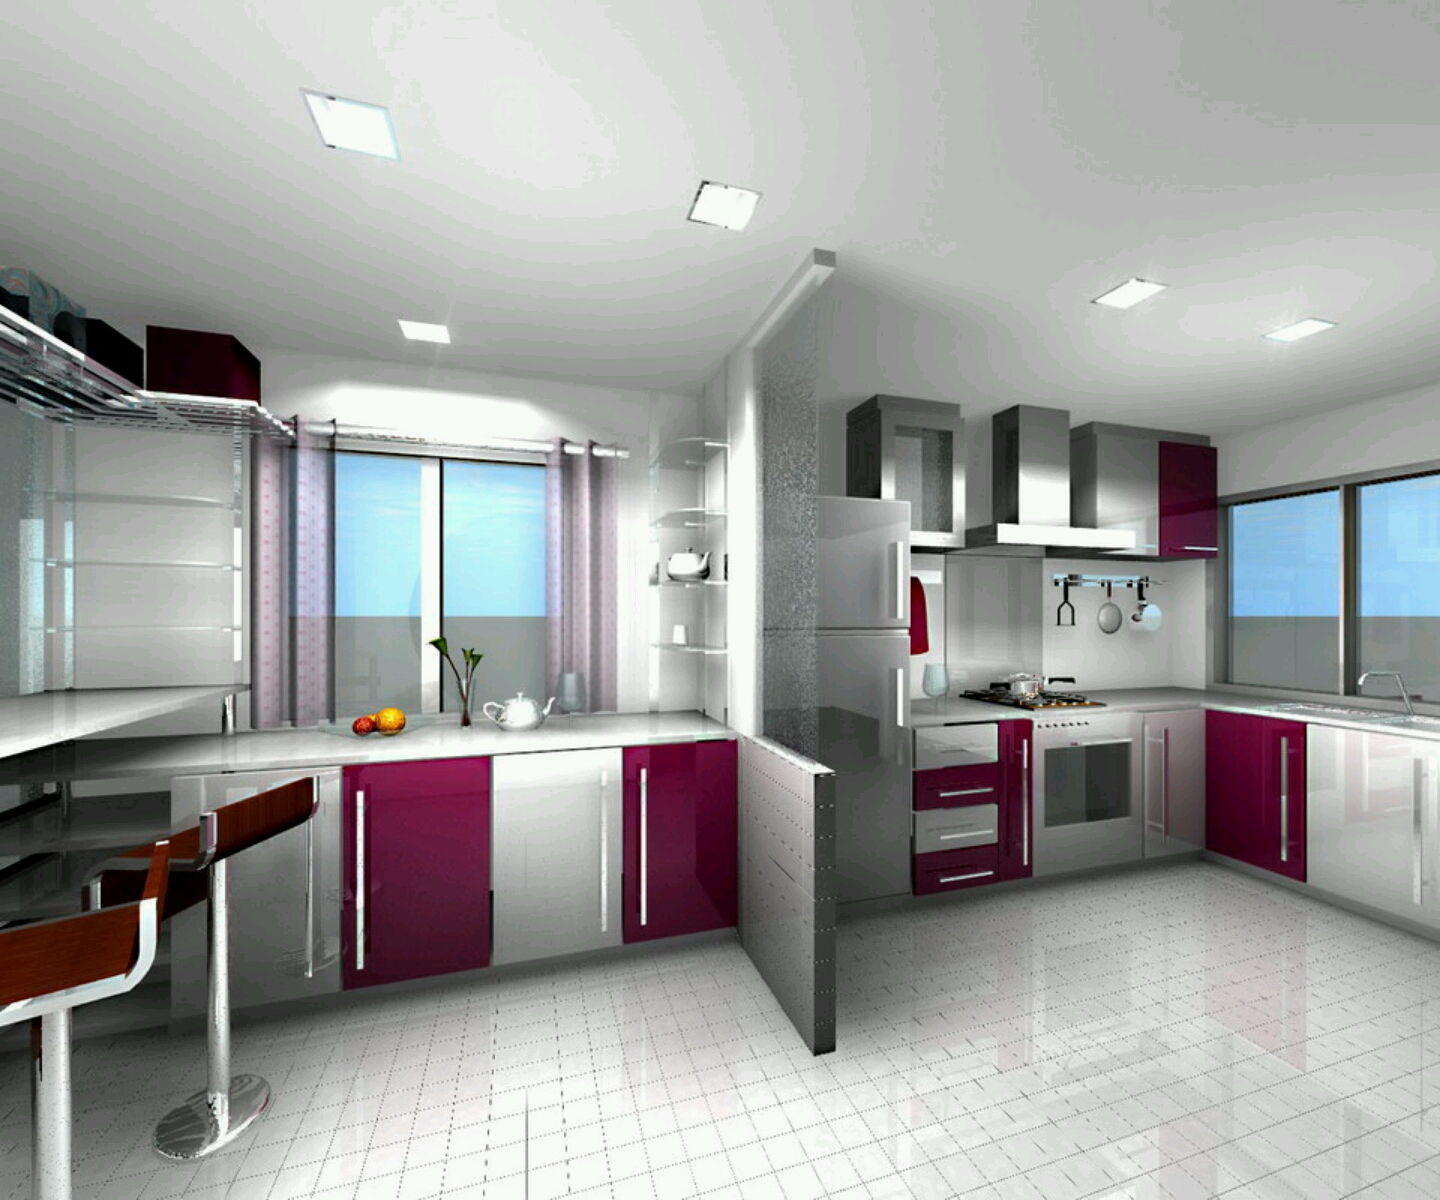 New Home Designs Latest Modern Home Kitchen Cabinet: New Home Designs Latest.: Modern Homes Ultra Modern